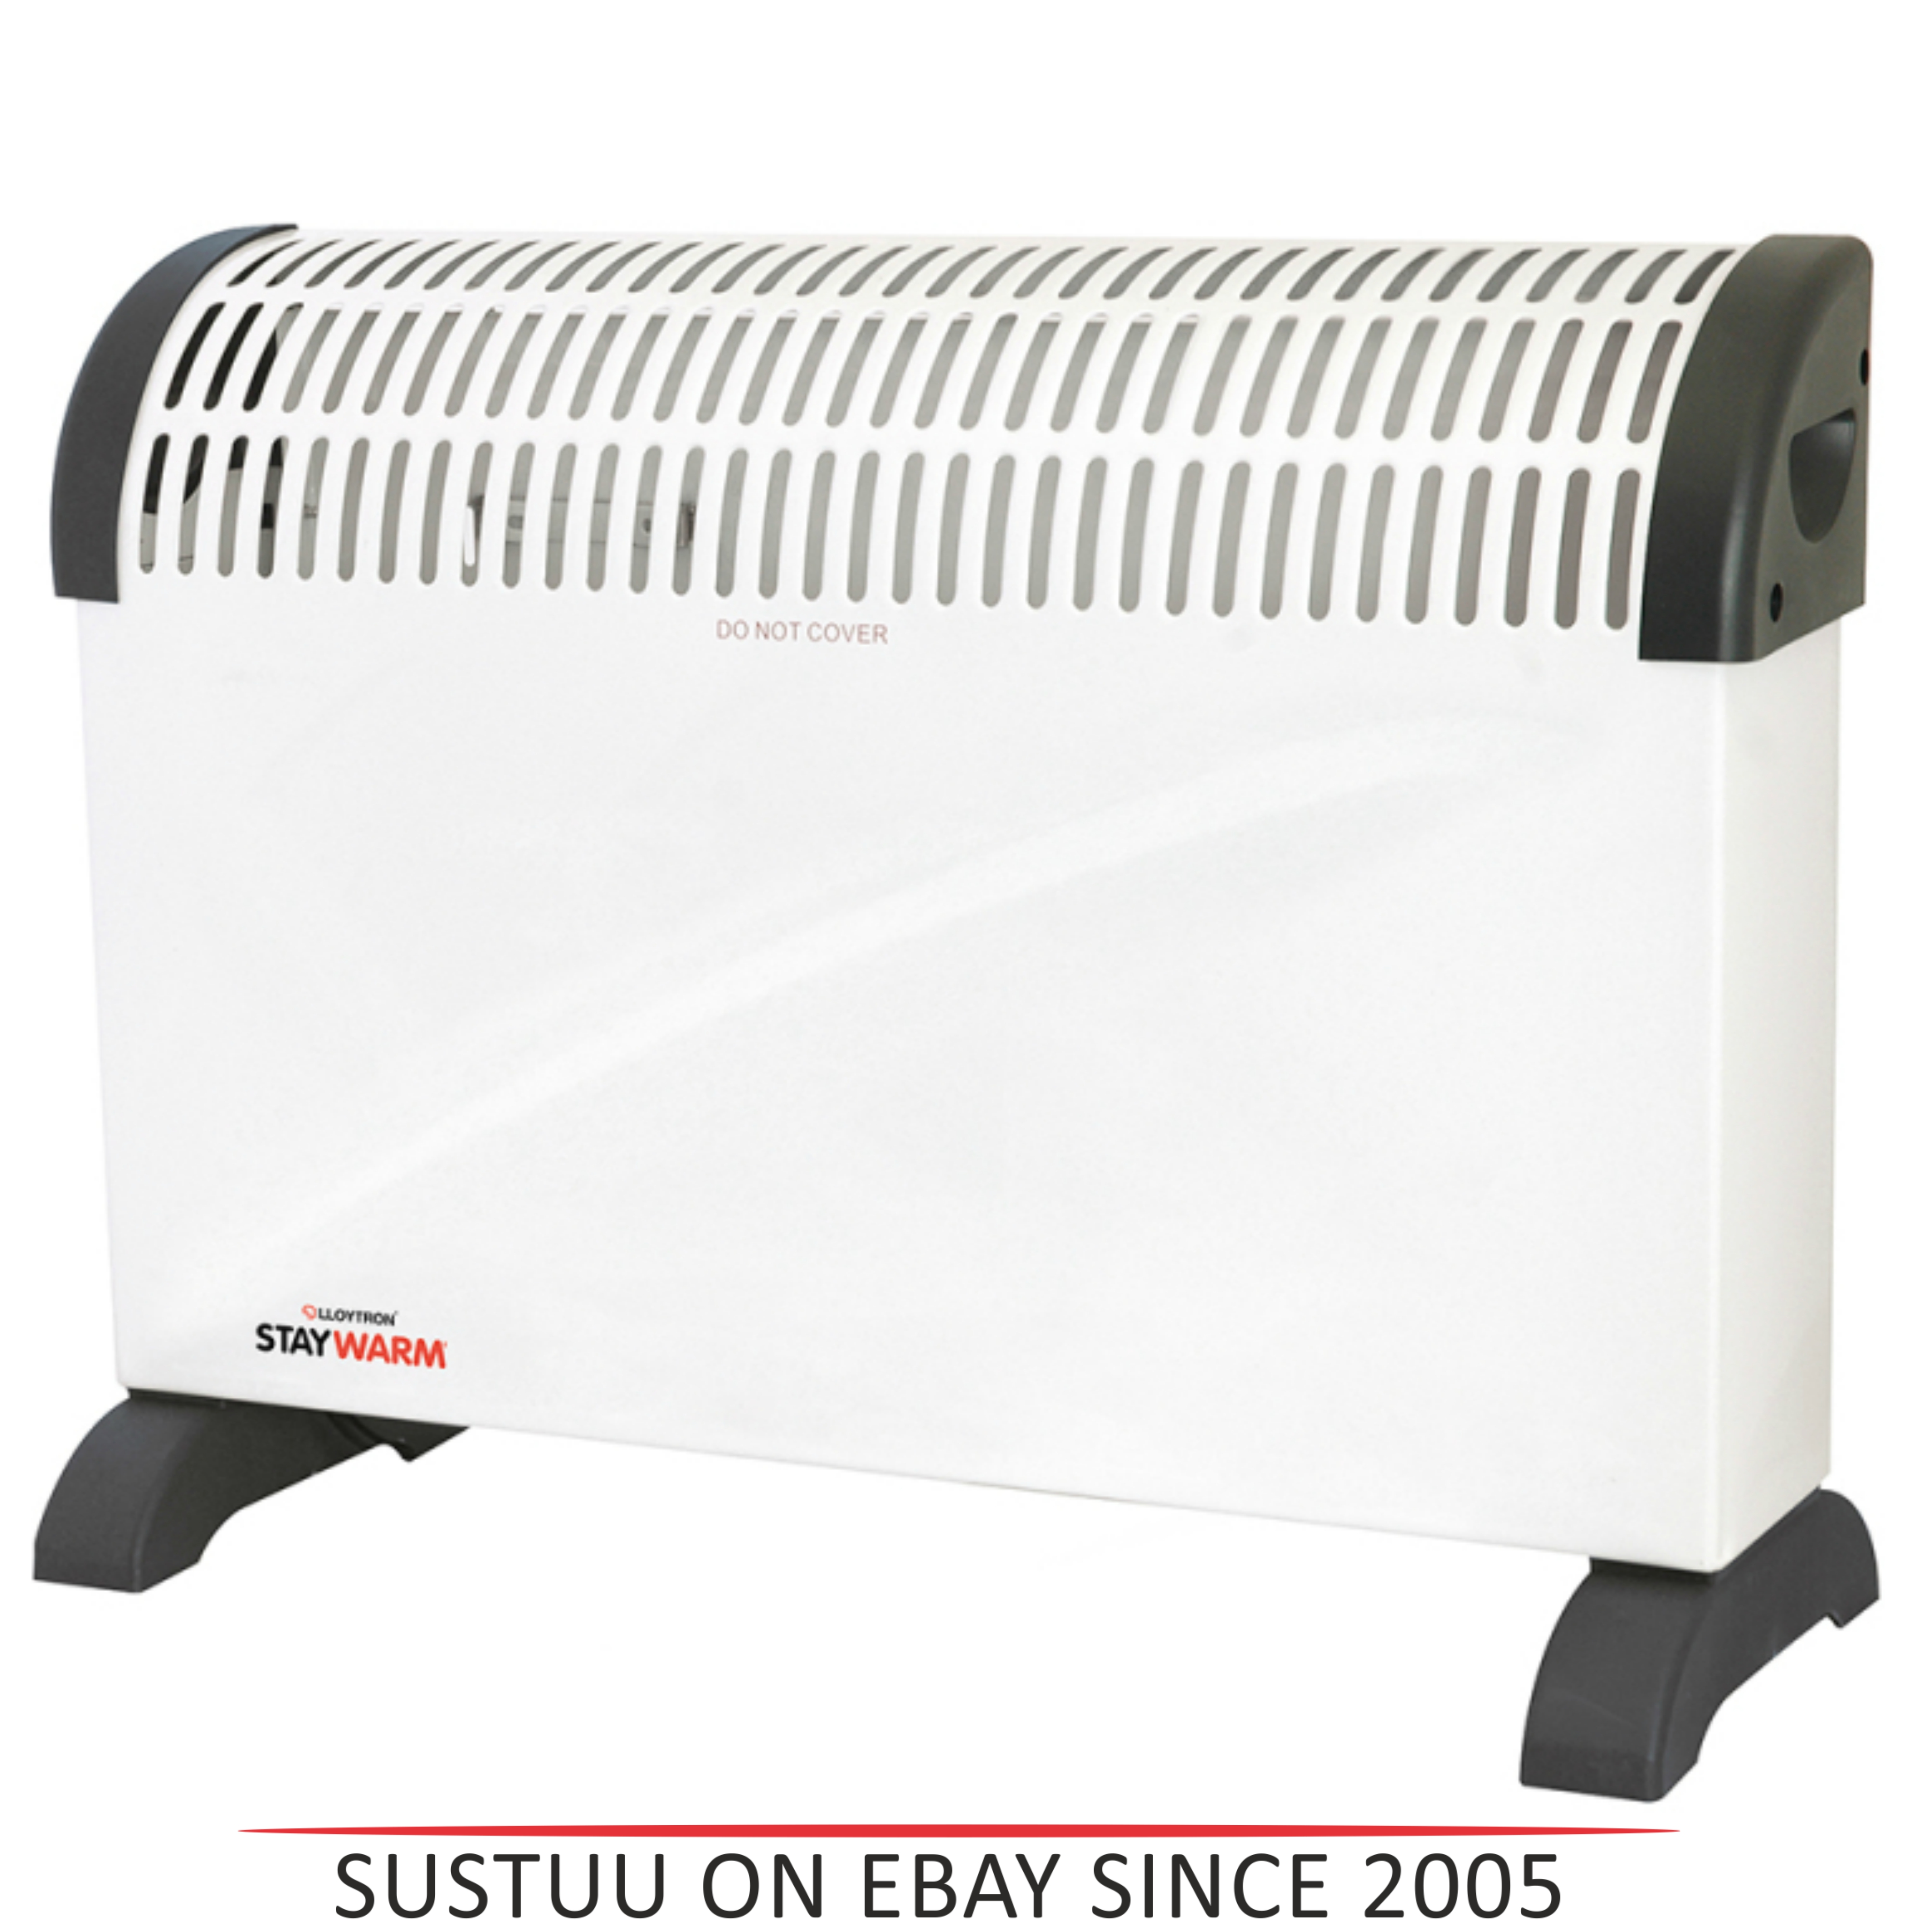 Lloytron  F2403WH Staywarm 2000w Standing Convector Heater / 3 Heat Setting / White /